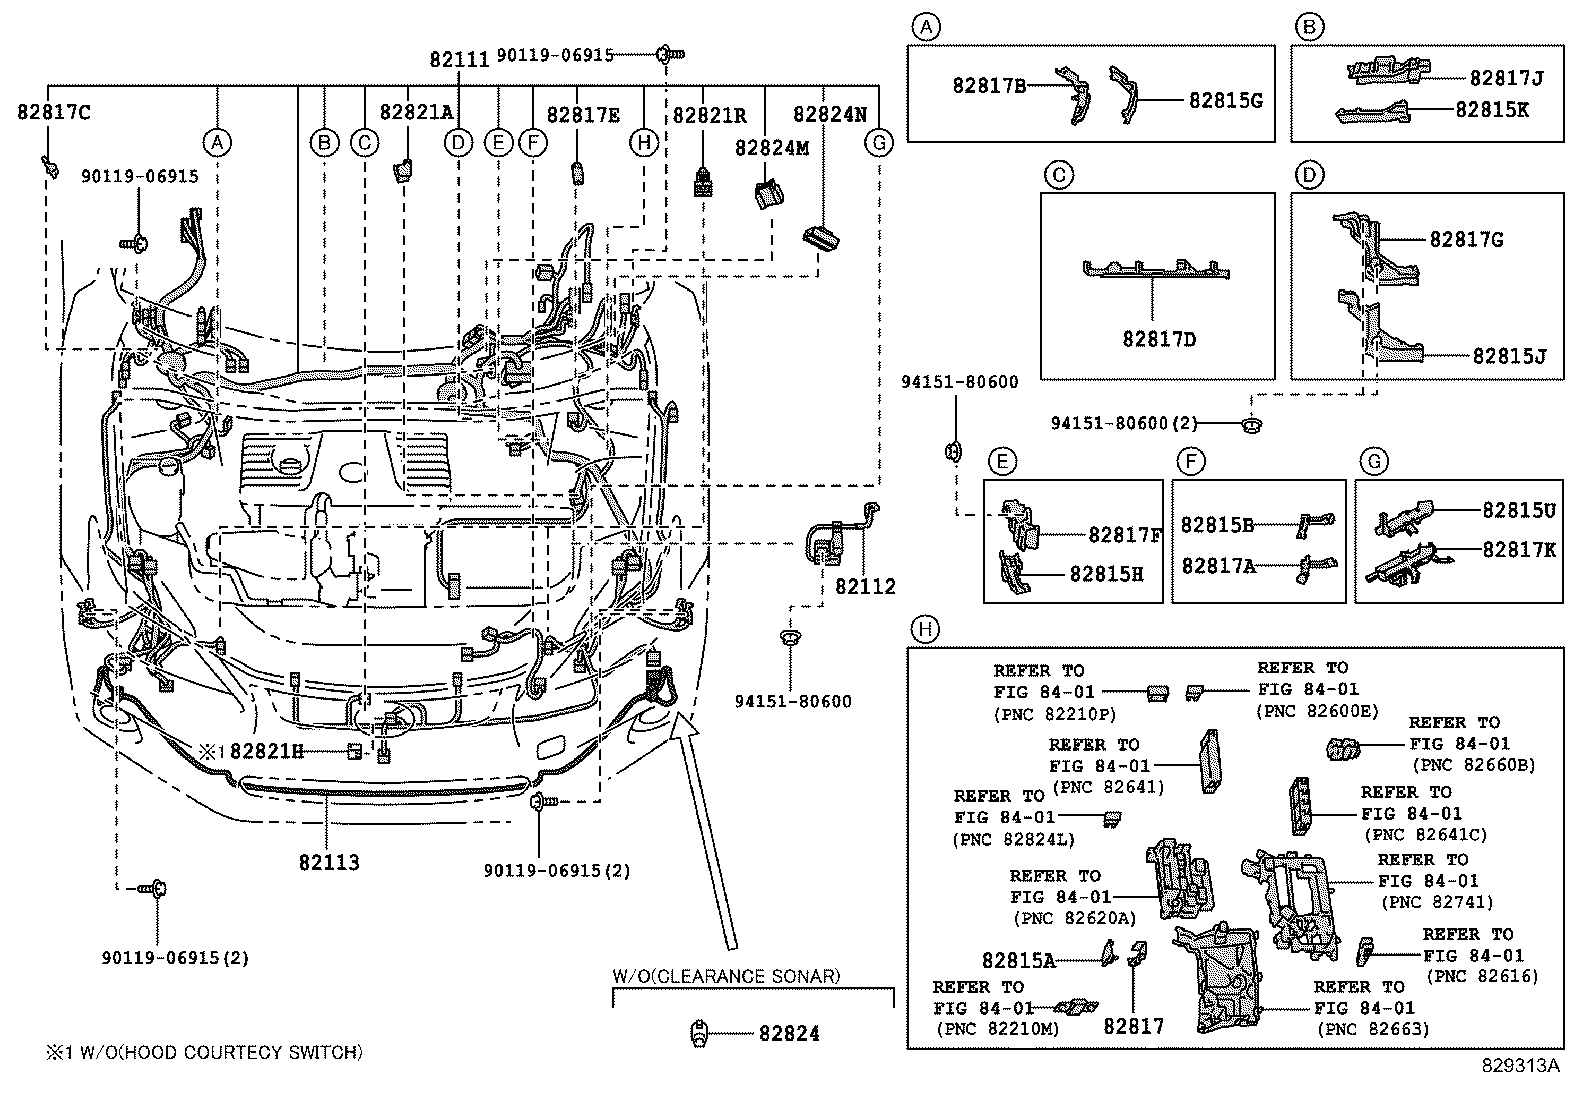 Ct Wiring Room Trusted Diagrams Weston Diagram Clampengine Illust No 1 Of121312 Lexus Honda 70